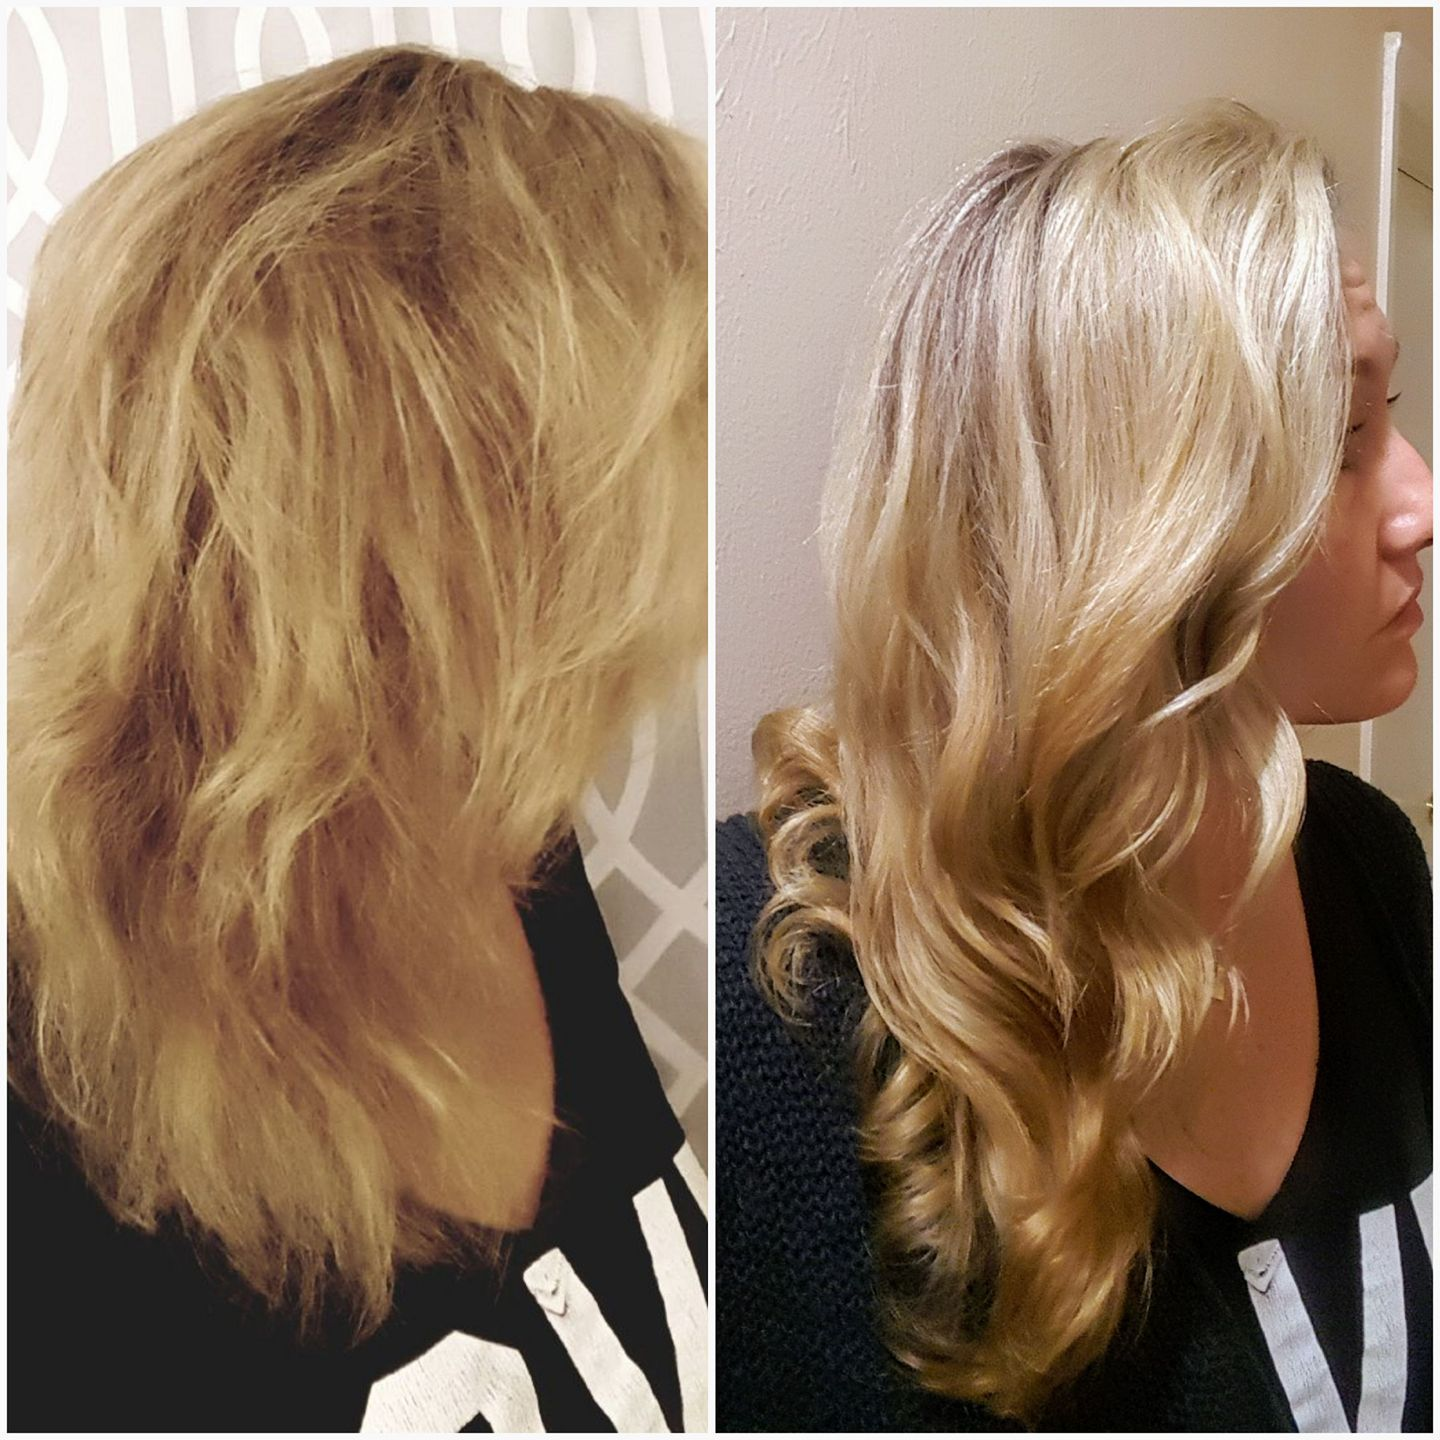 From Testimonial Gorg Results Using Monat Hair Products Started